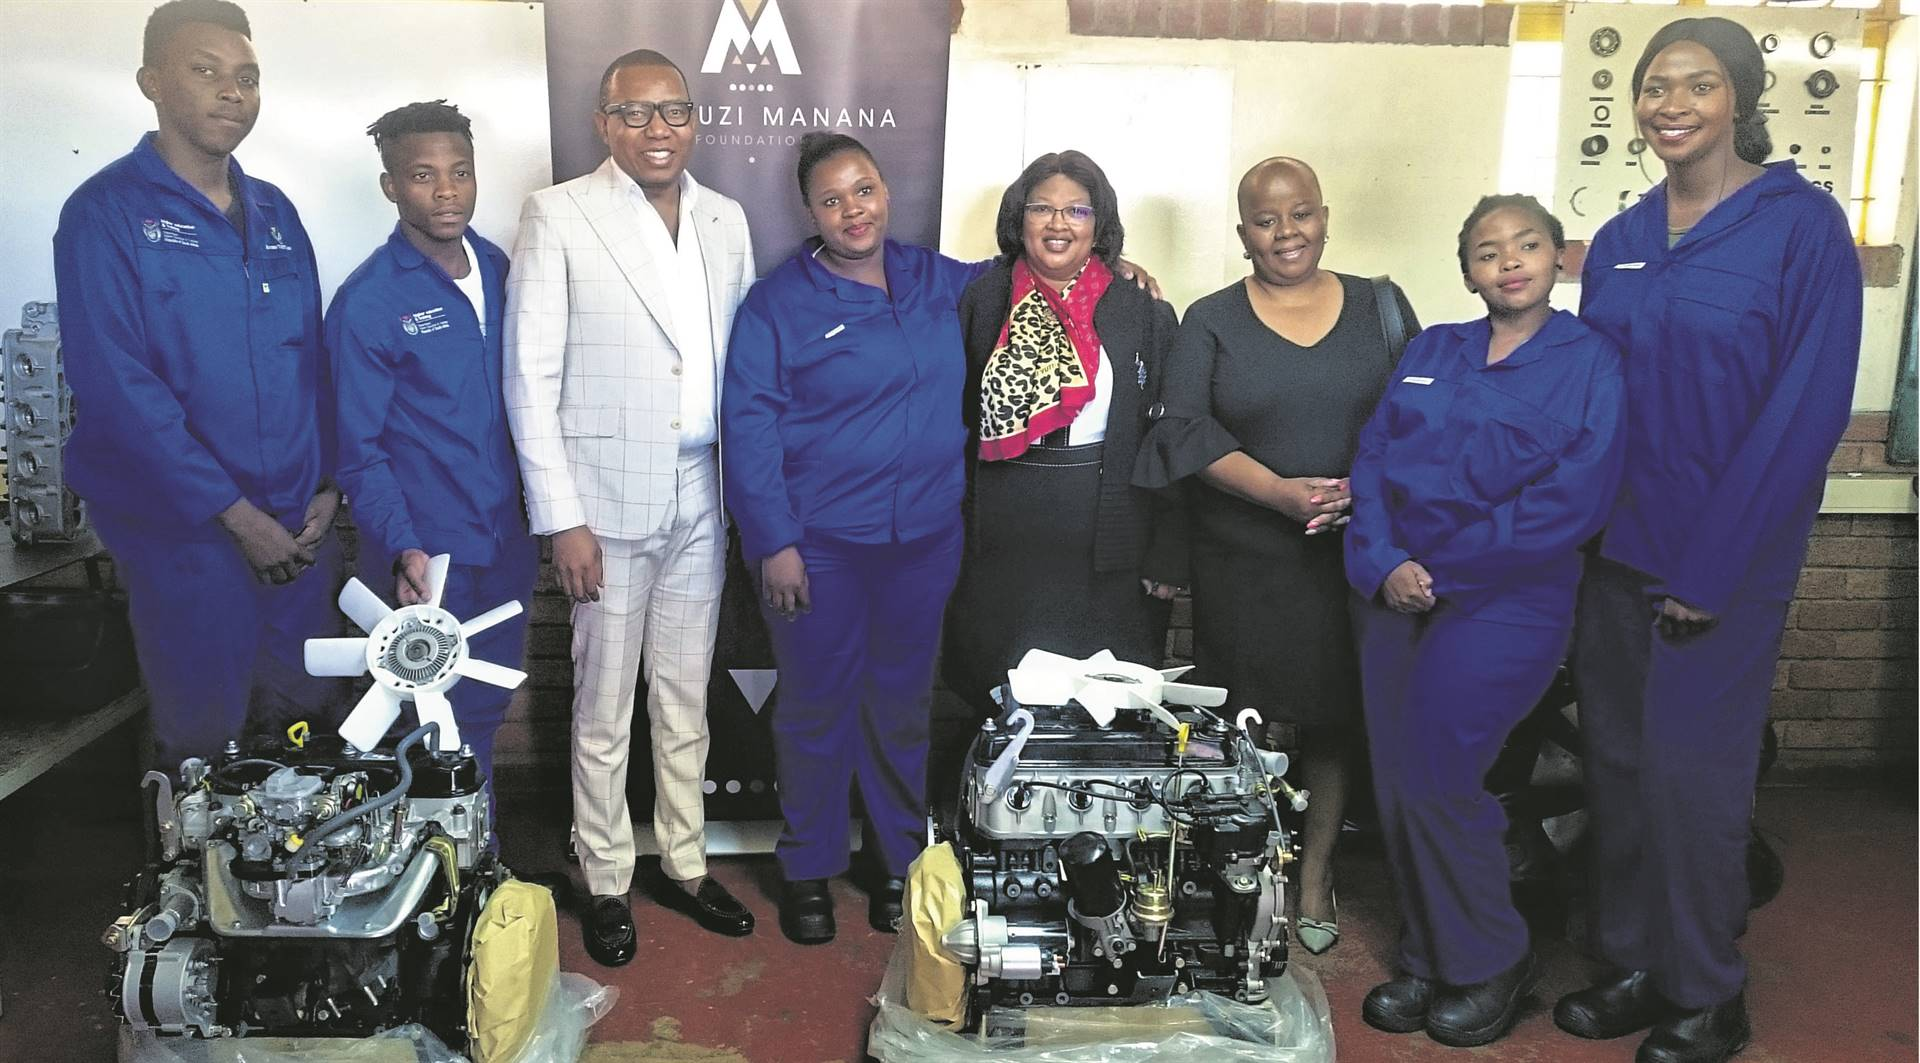 The Mduduzi Manana Foundation (MMF) donated automotive mechanical engineering components to the Motheo Technical and Vocational Education and Training (TVET) College in Bloemfontein on Thursday (10/10). At the presentation are, from the left: Khahliso Phakisi, Thabiso Mpatsa, Mduduzi Manana (MMF chairperson), Dineo Makhothi, Prof. Dipiloane Phutsisi (Motheo TVET College principal), Matseliso Mfanta (Motheo TVET College council member), Nthabeleng Mokwena and Phila Ngculu. Photo: Khumisho Dithebe